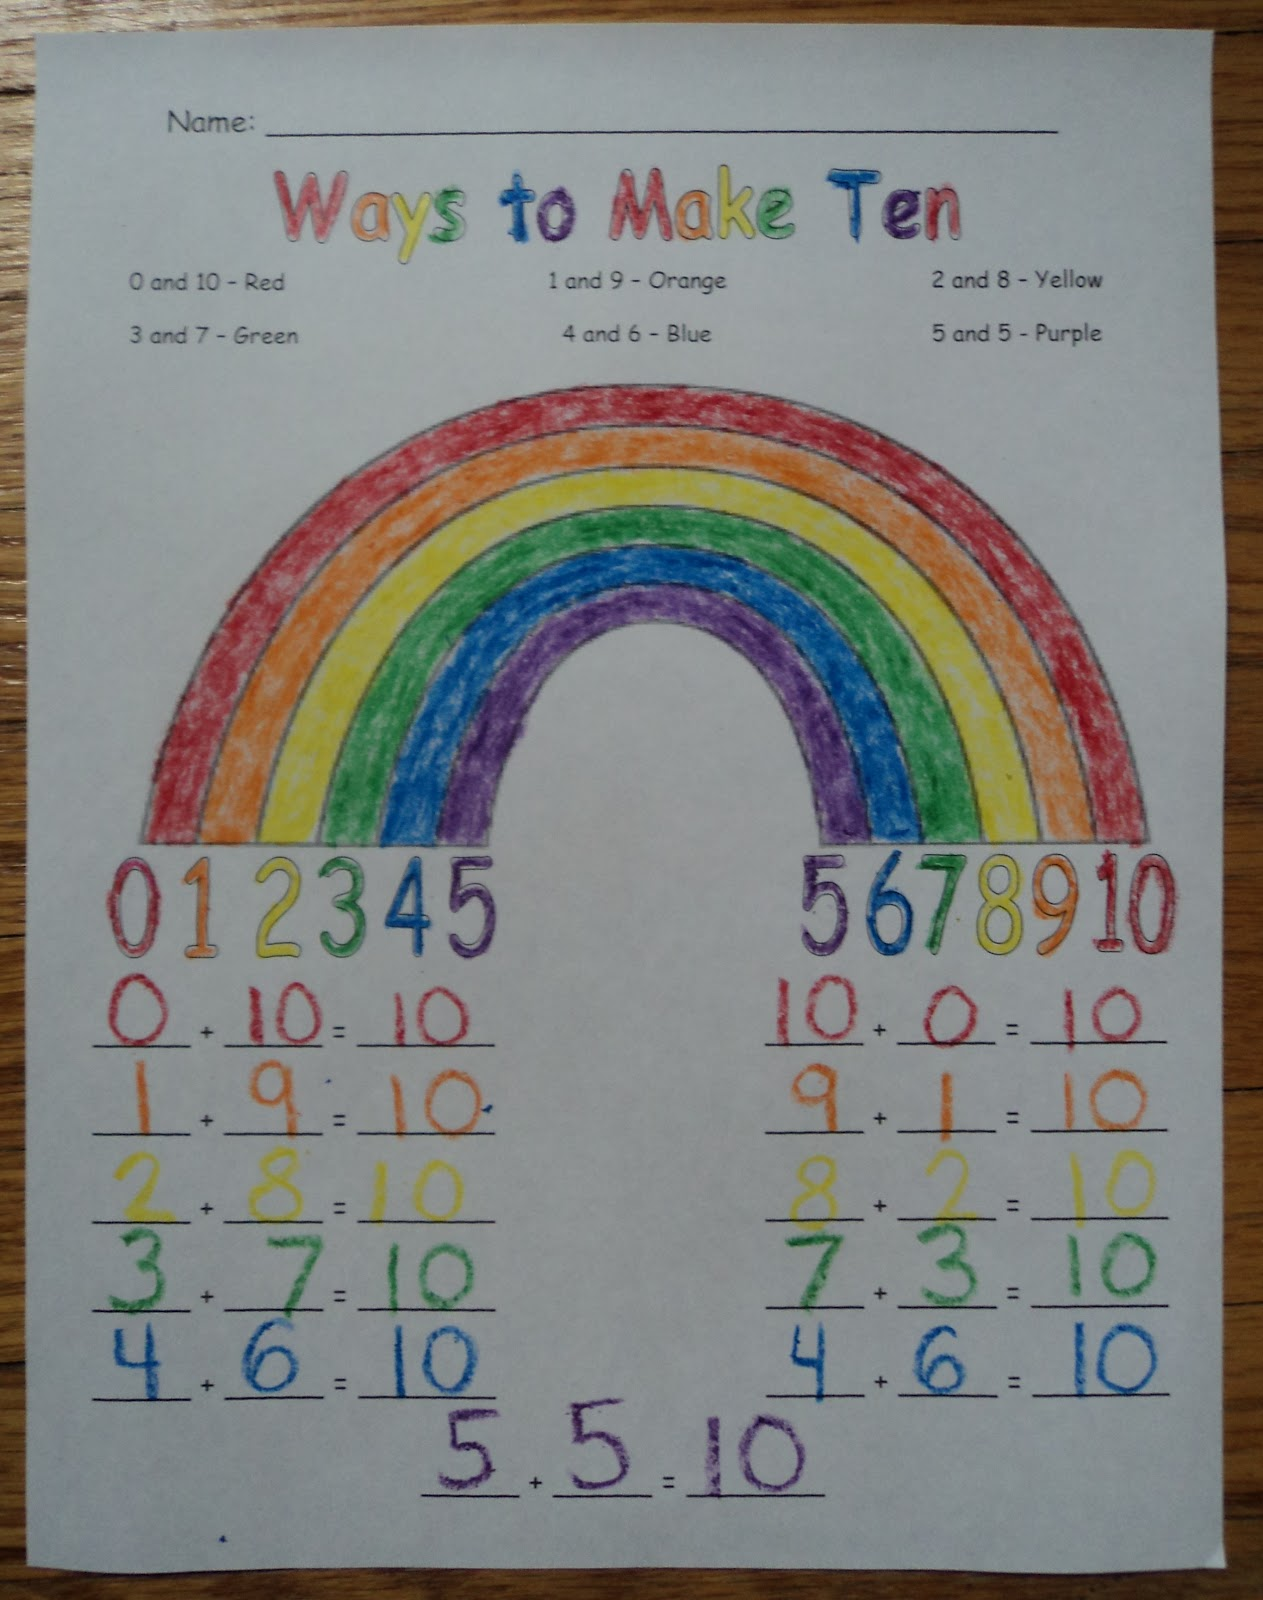 Kindergarten Ways Make 5